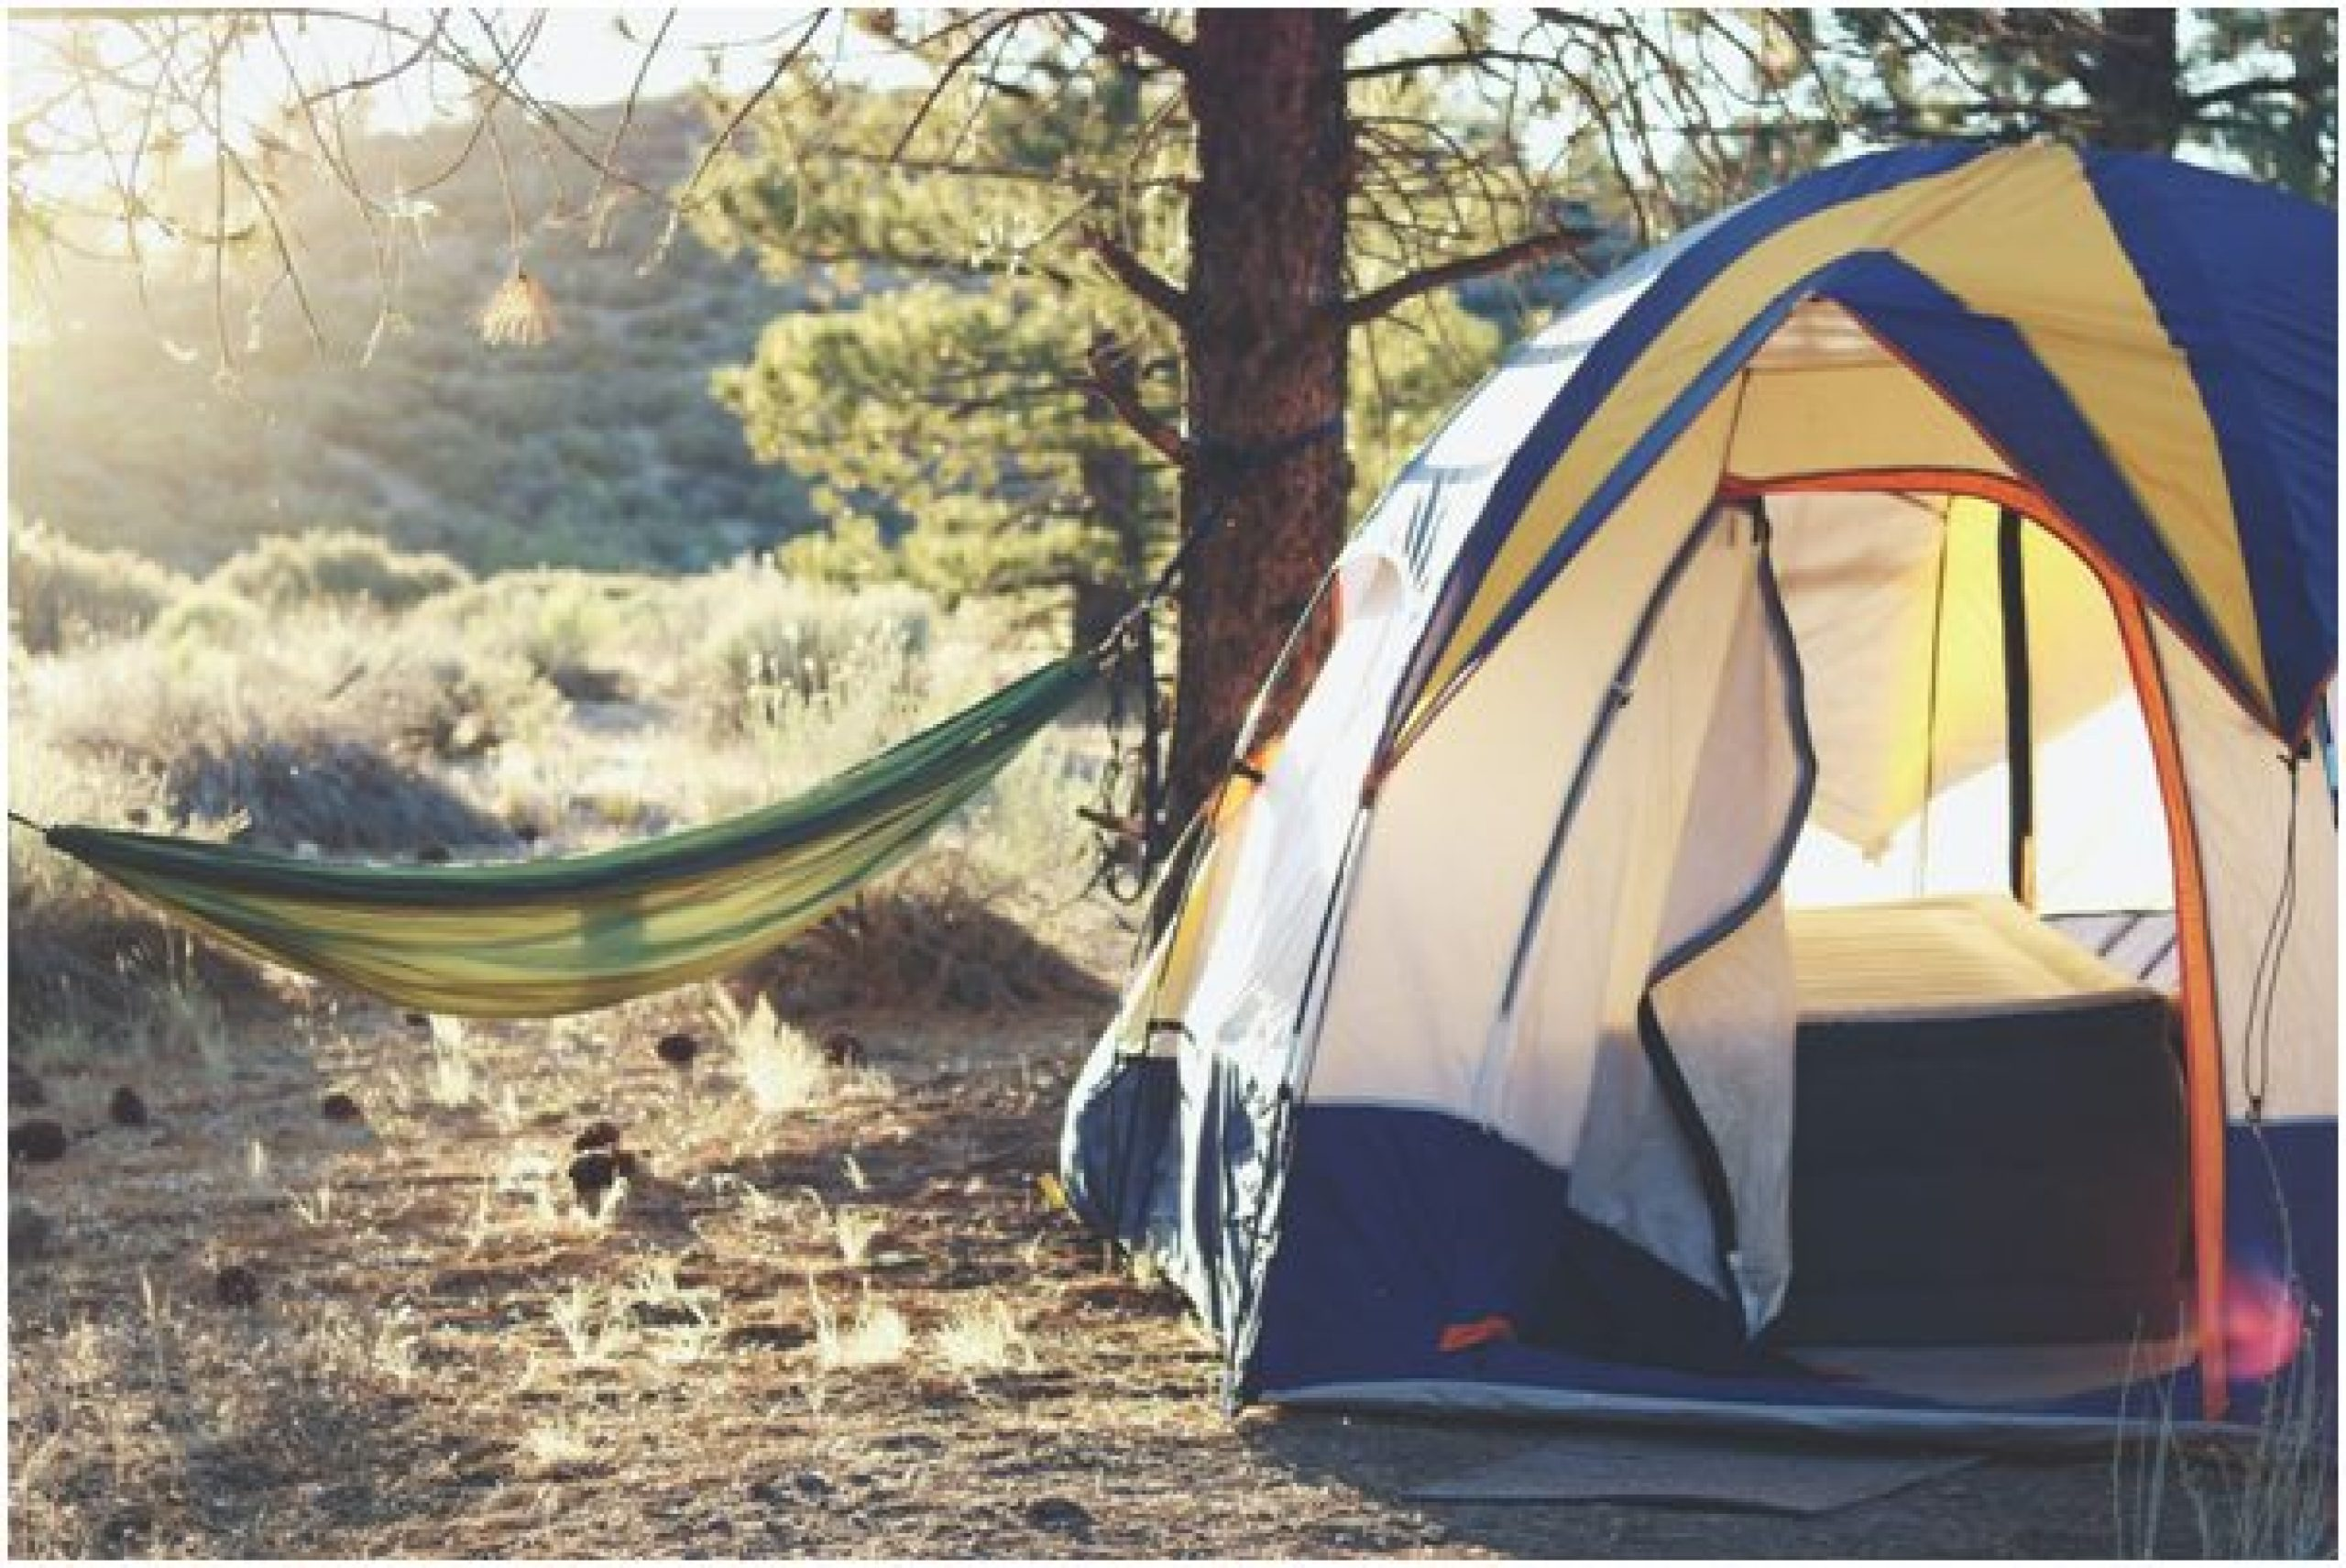 Tent and hammock in the woods